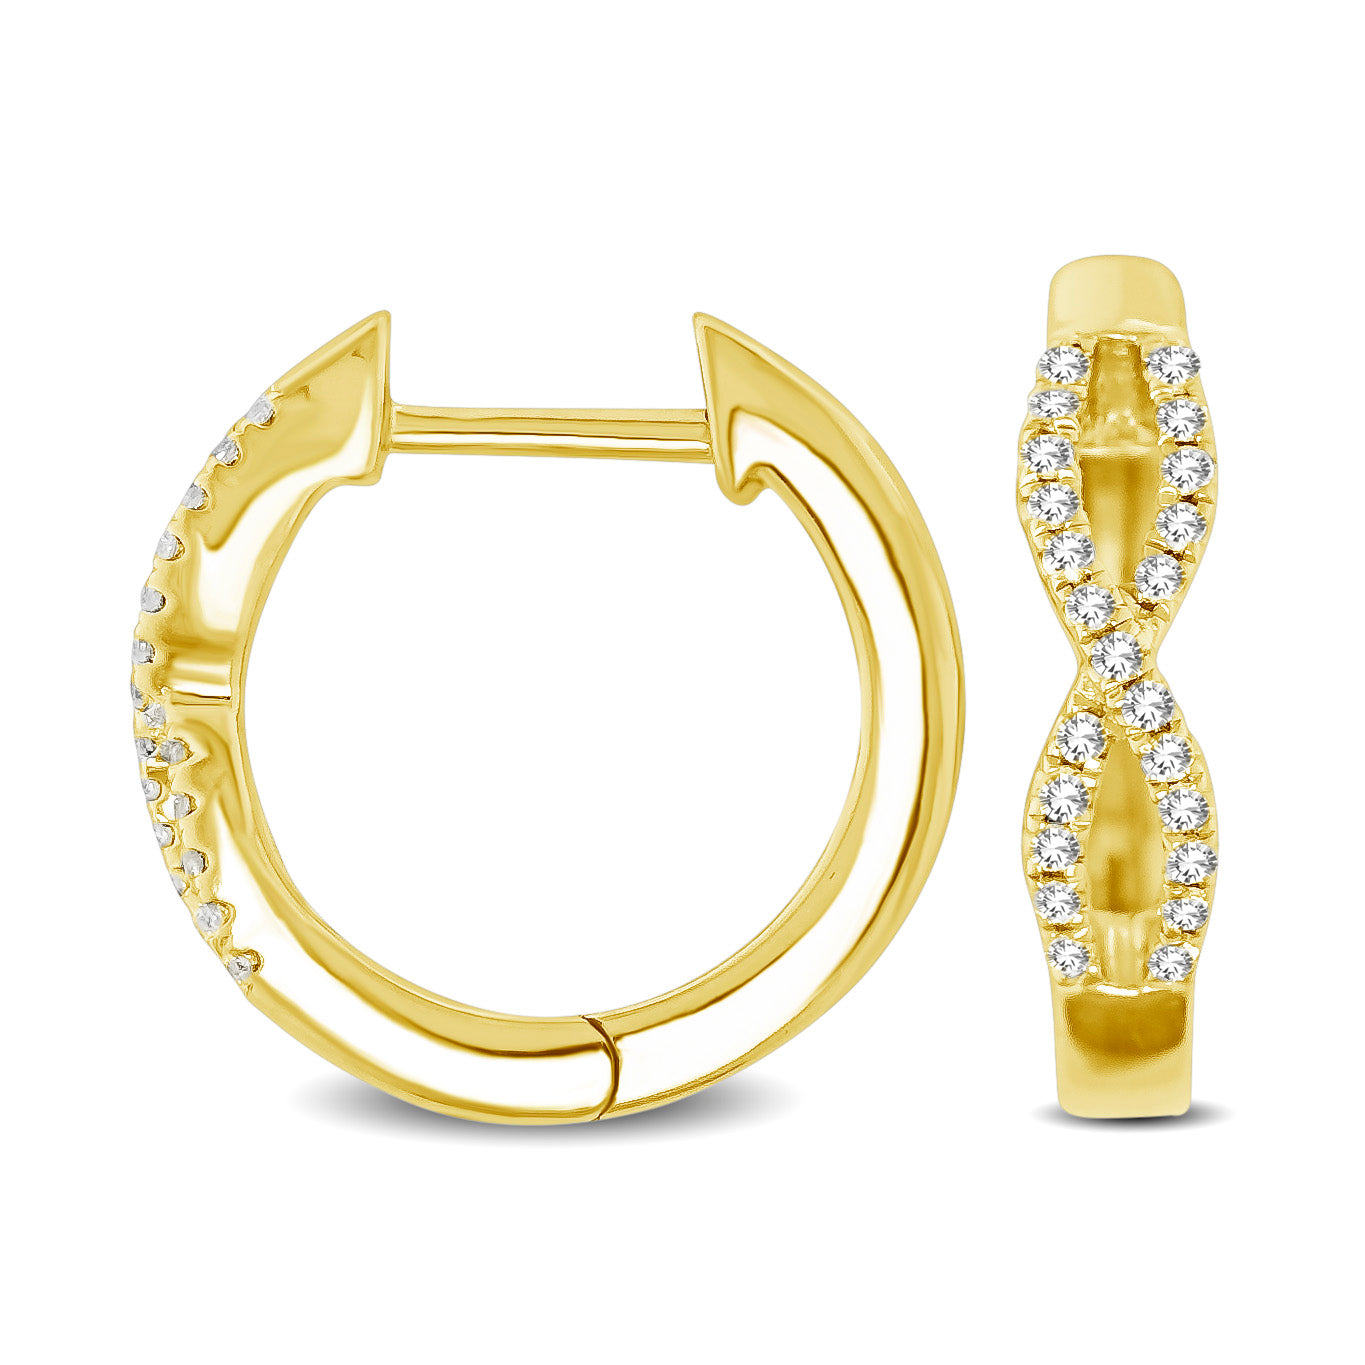 10K Yellow Gold 1/6 Ctw Diamond Hoop Earrings